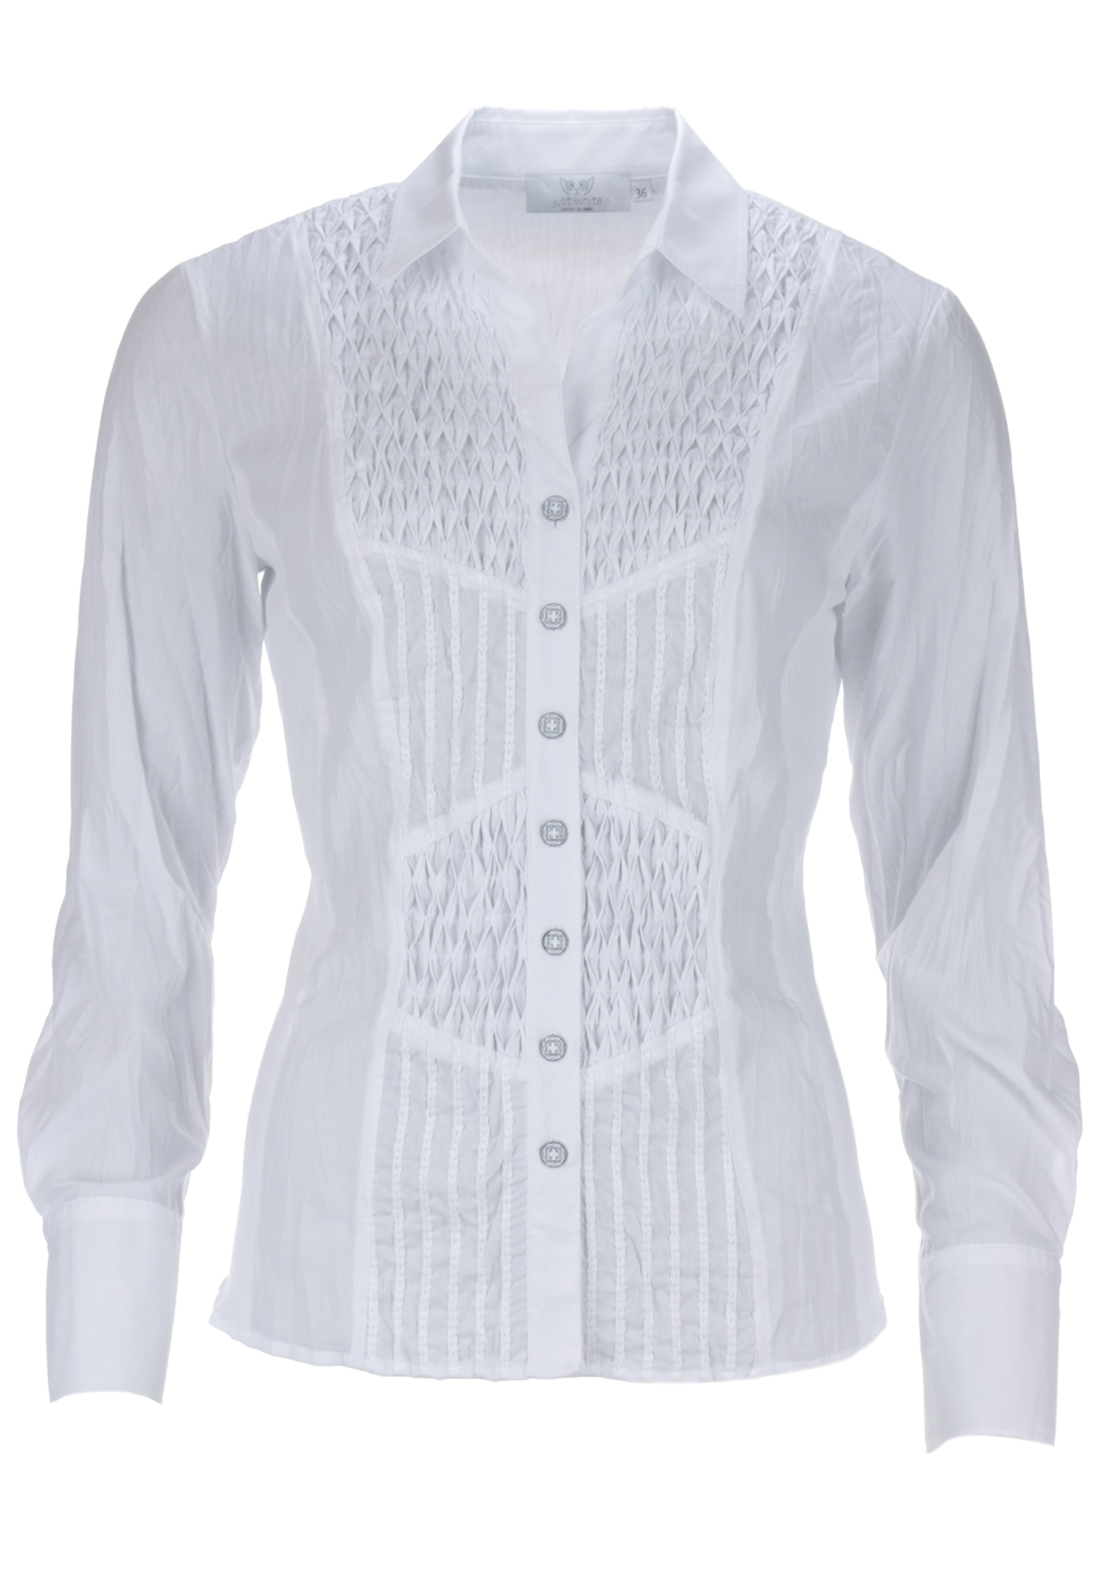 Just White Embroidered Panel Crushed Long Sleeve Blouse, White